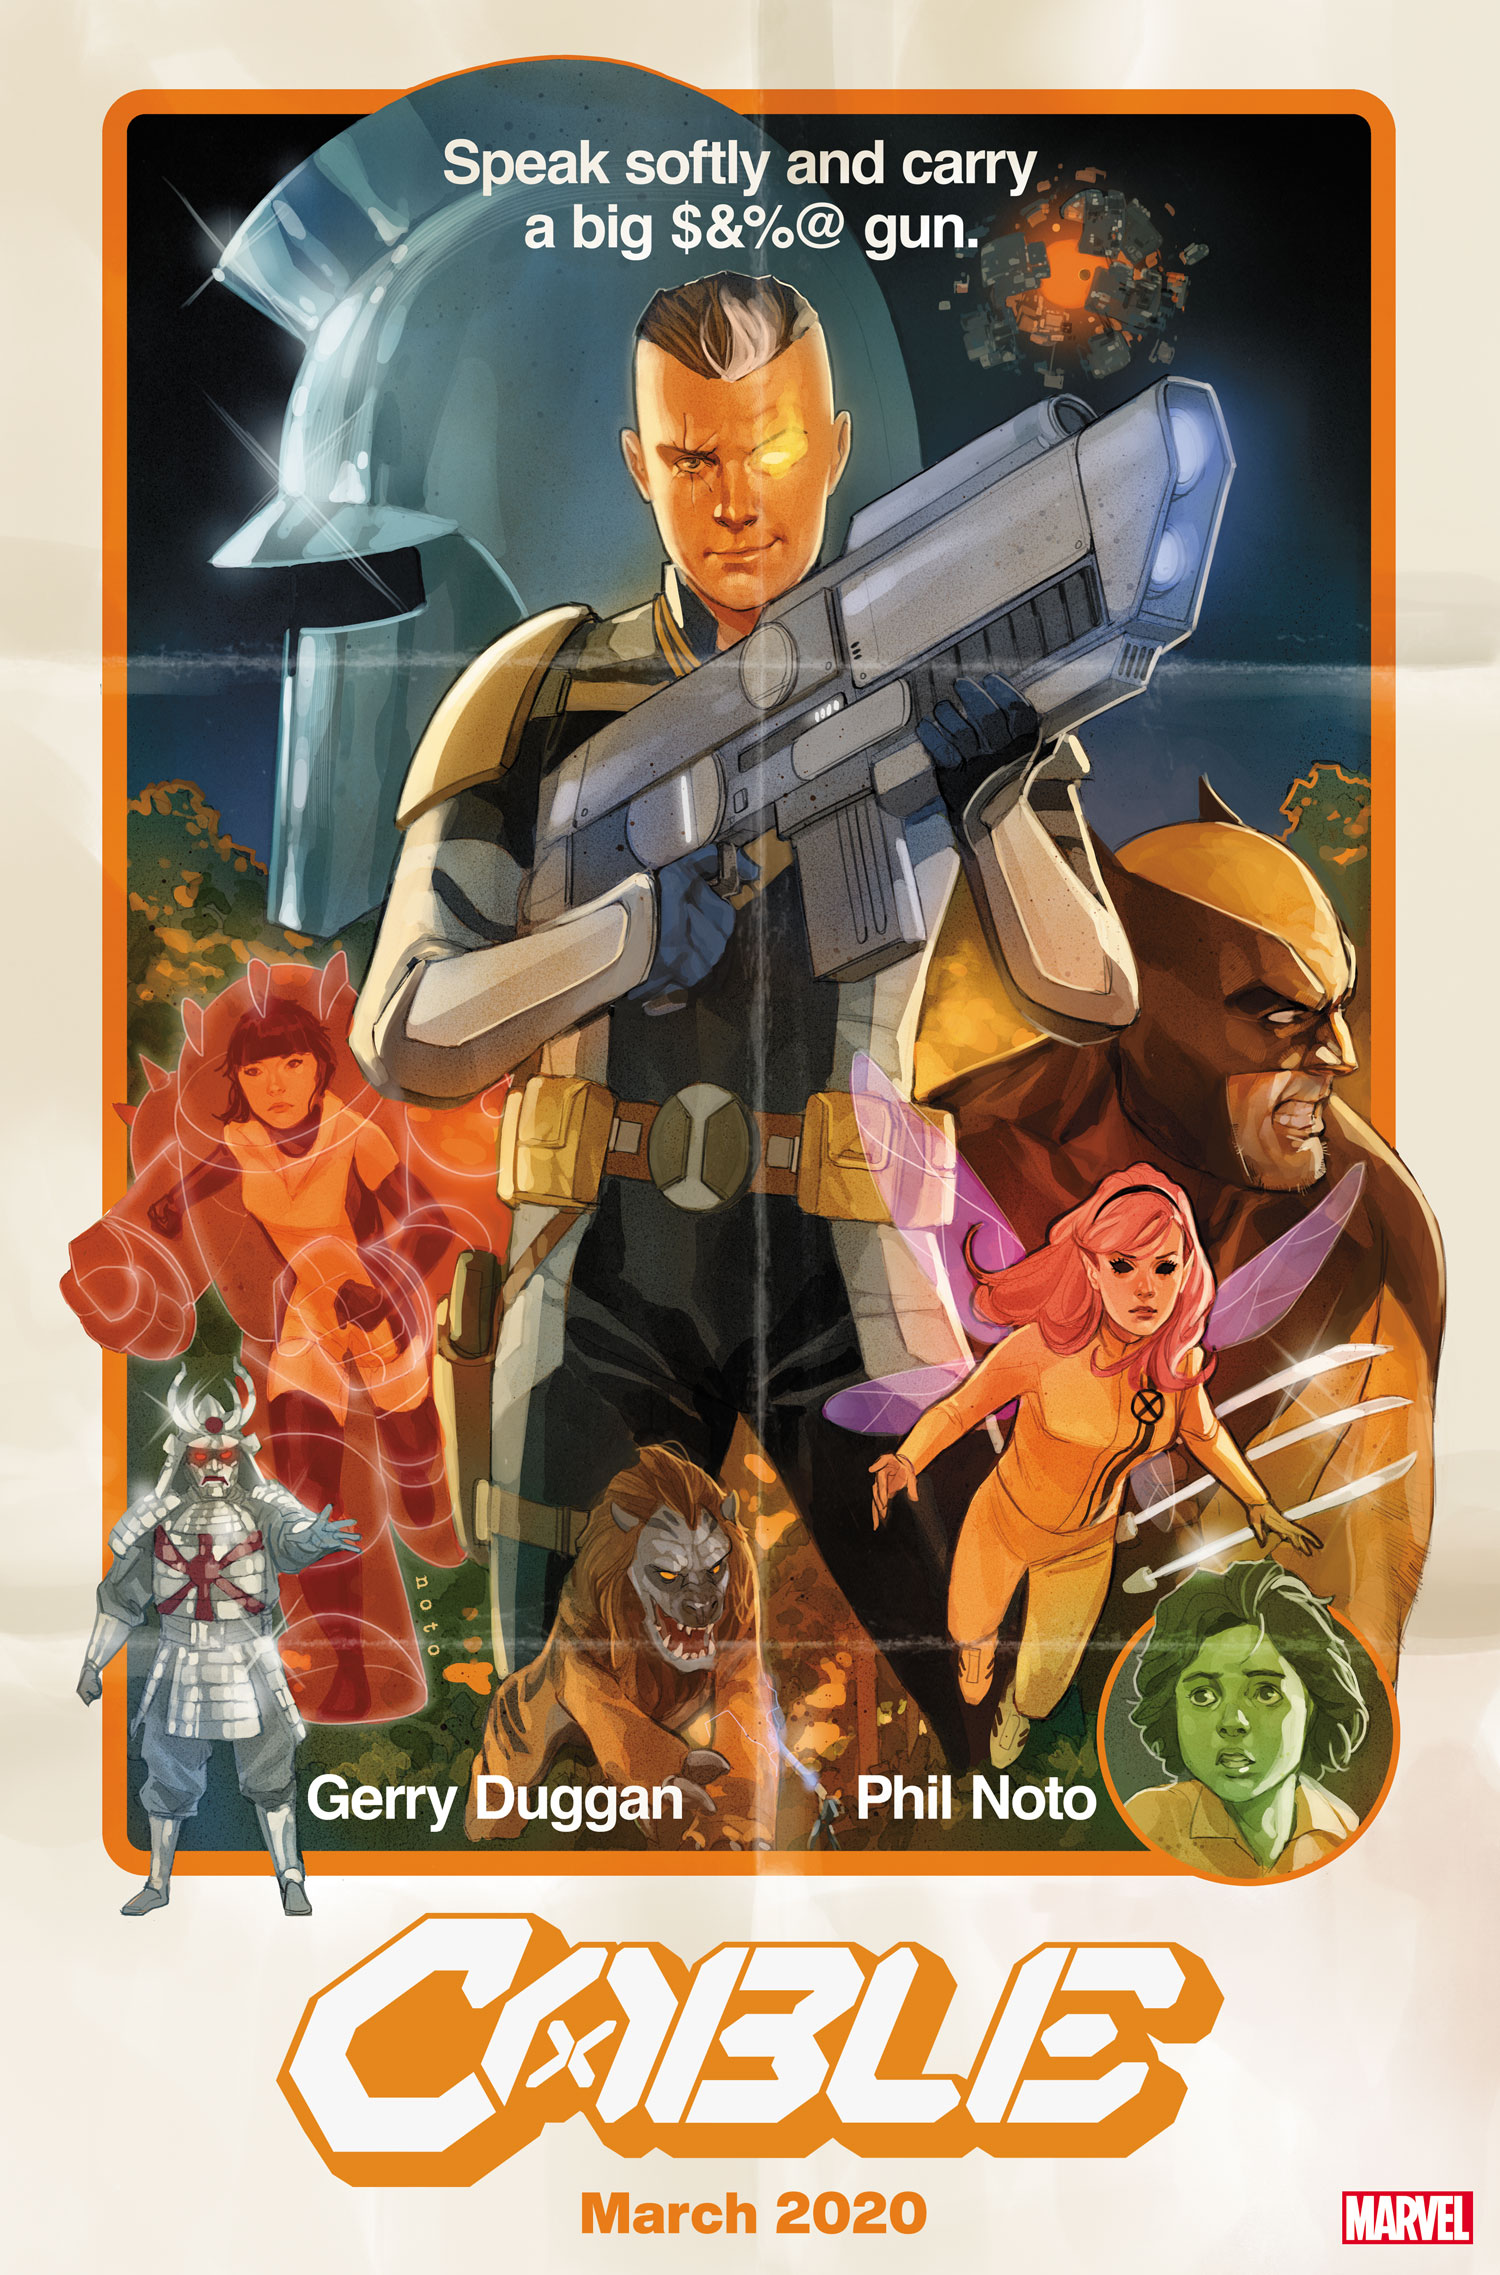 """""""Witness the dawn of rebellion"""" in March 2020 with Cable #1 by Gerry Duggan and Phil Noto"""